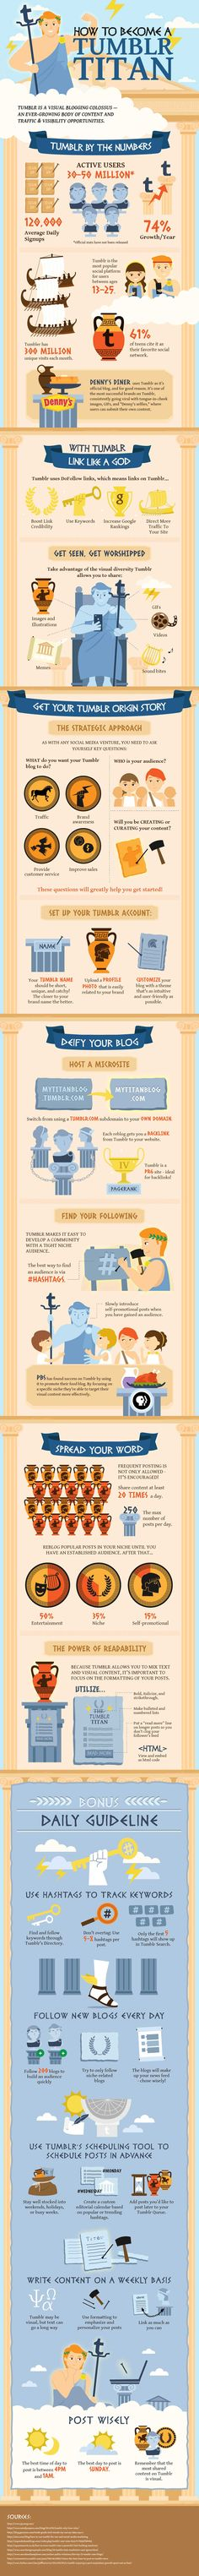 How to Become A Tumblr Titan Infographic. Topic: Social media, internet, blogging, blogger, power user.